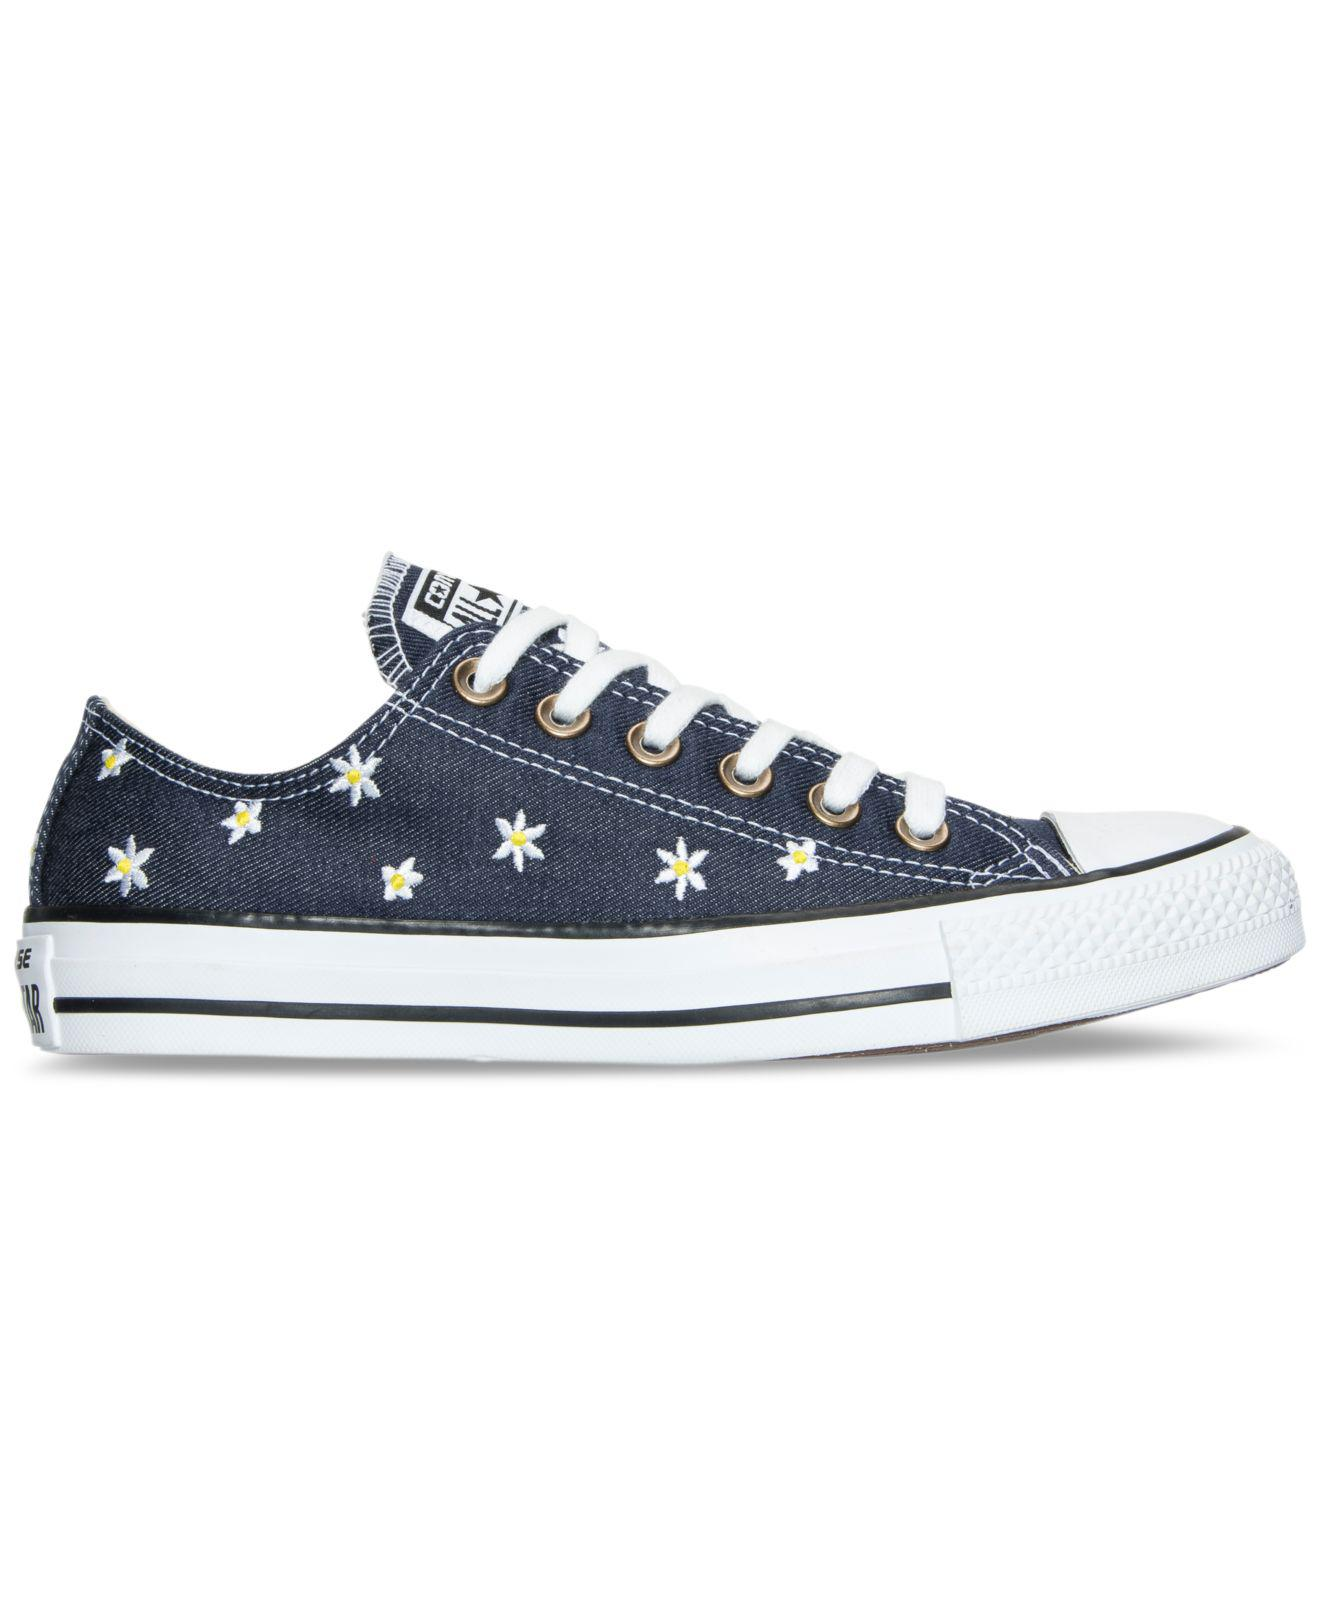 84c6e5cee4d5 Lyst - Converse Women s Chuck Taylor Ox Daisy Print Casual Sneakers ...